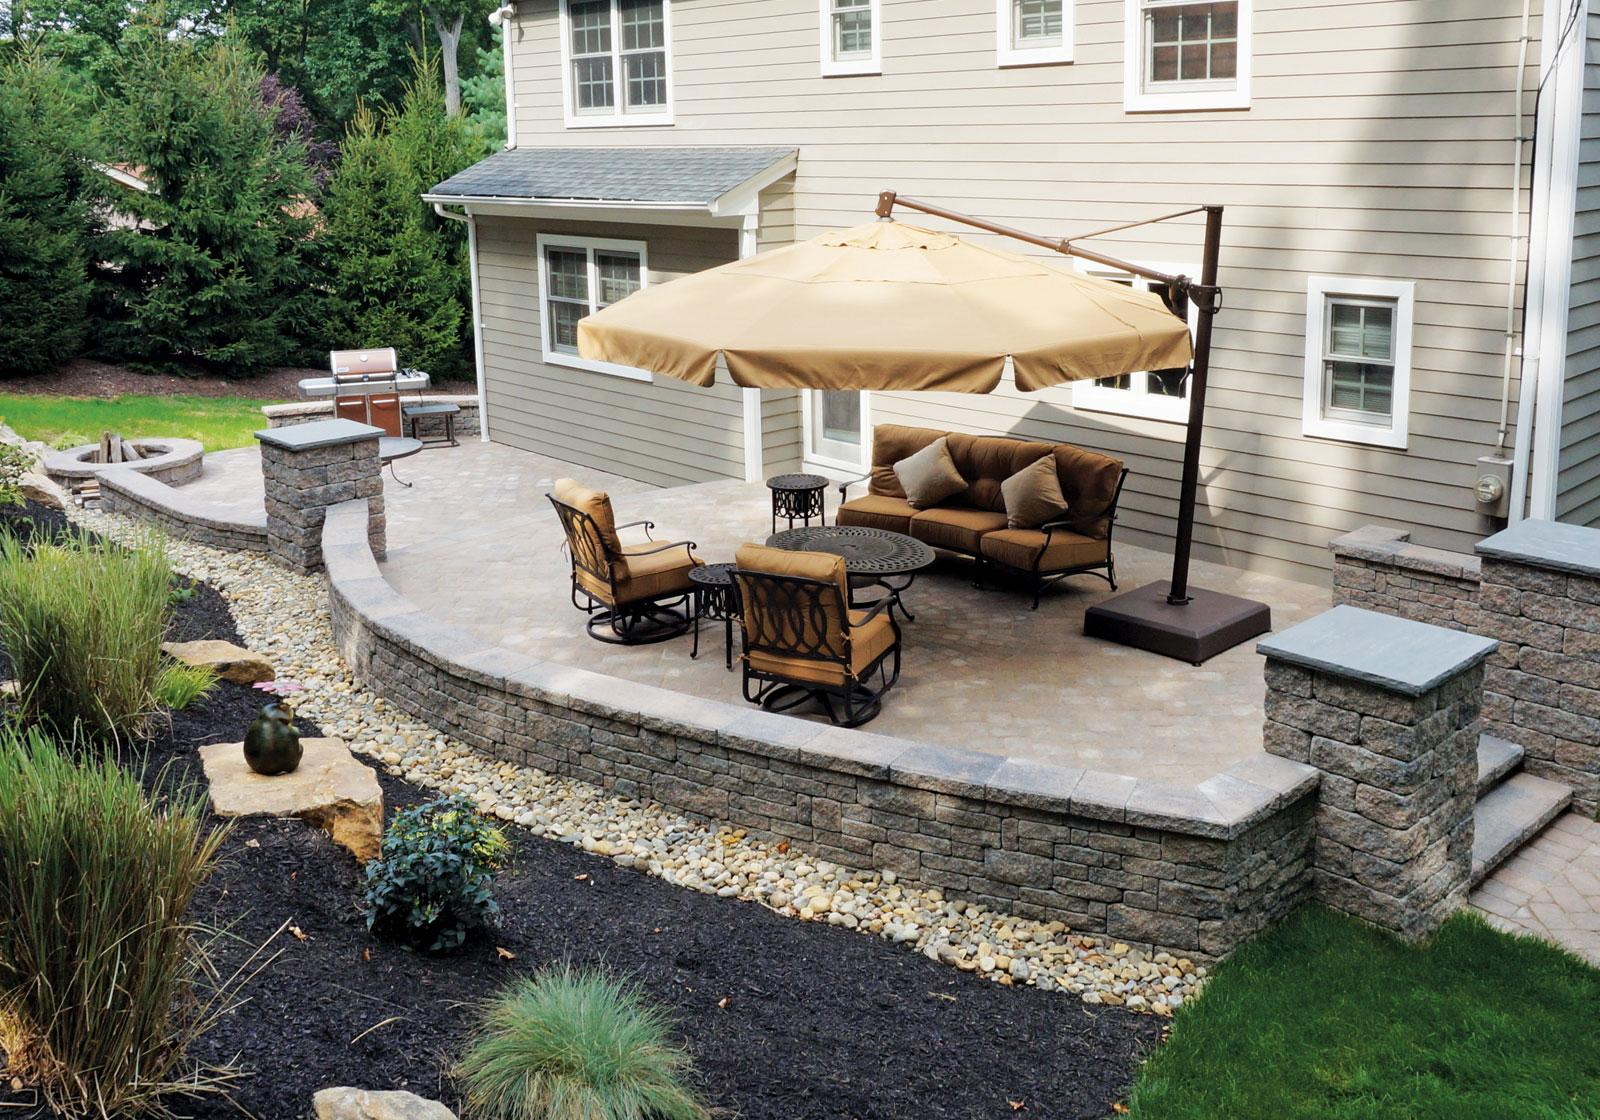 Backyard Patios Design Ideas Cornerstone Wall Solutions: backyard ideas